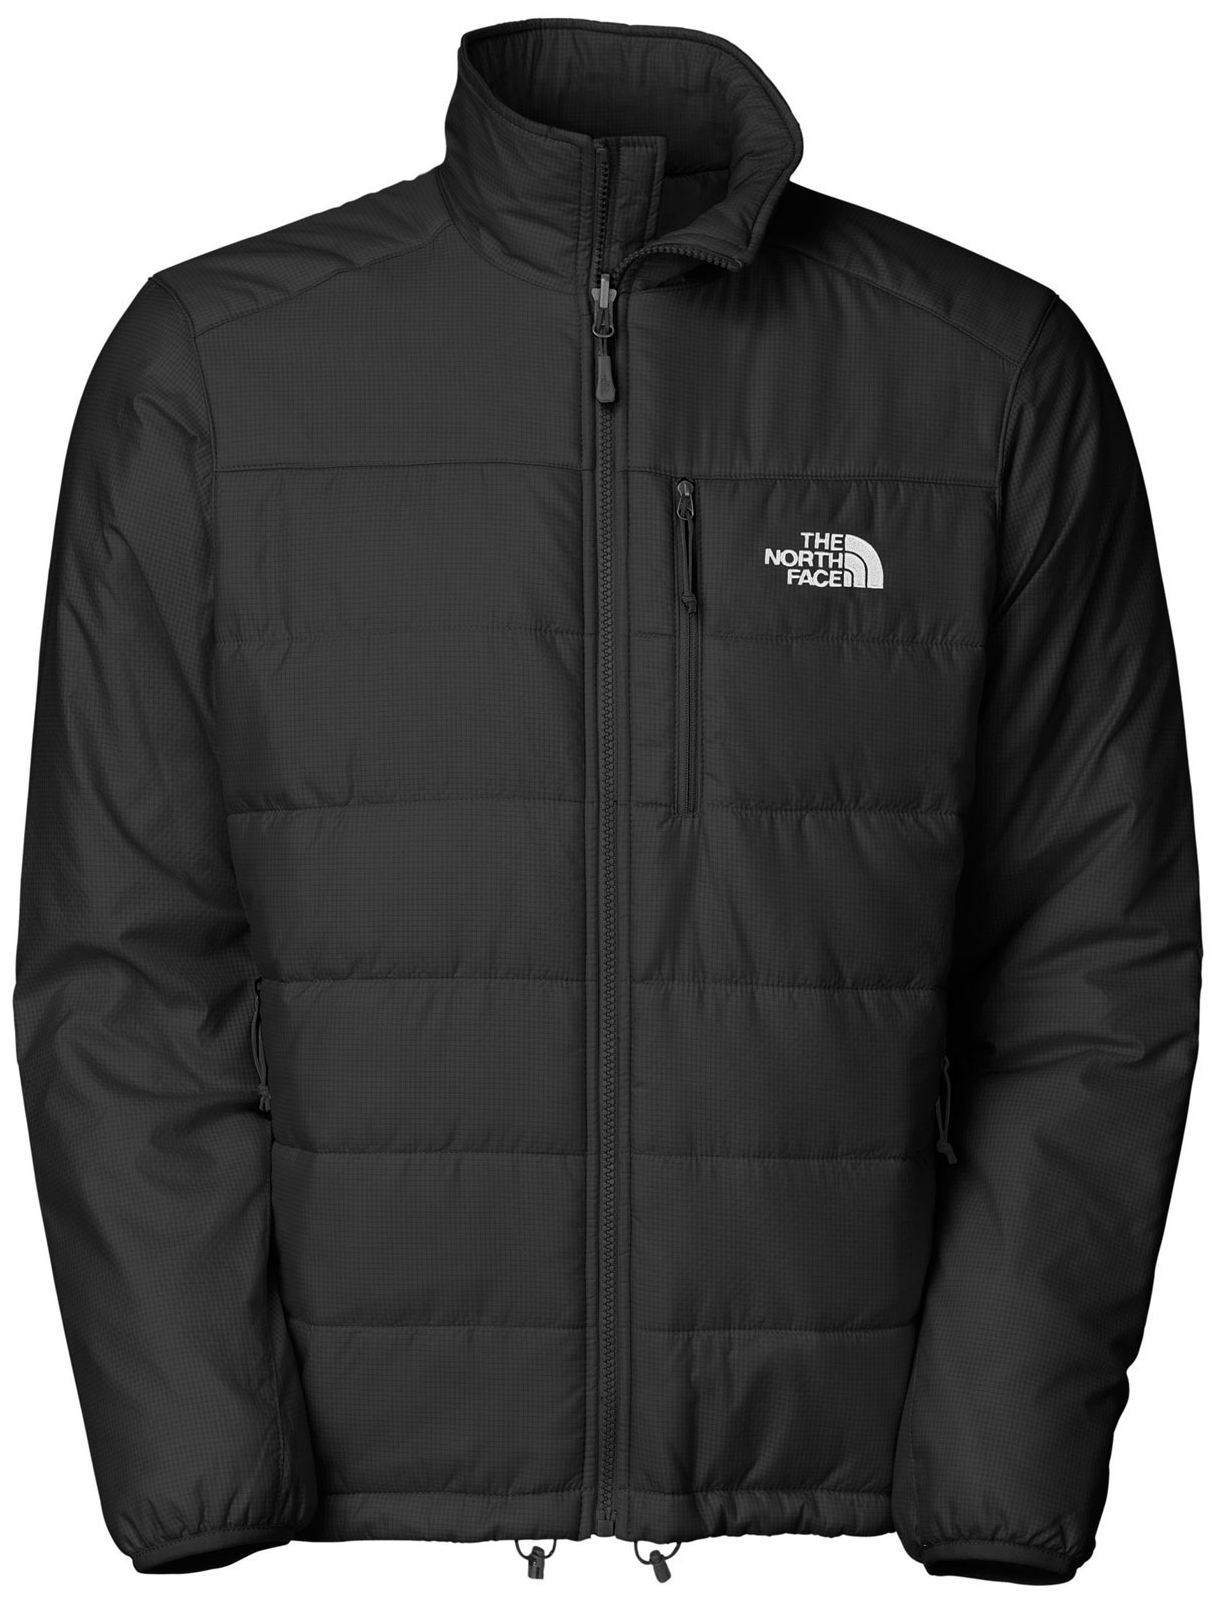 "Key Features of The North Face Redpoint Jacket: Avg Weight: TBD Center Back: 28"" Fabric: body: 30D 54 g/m2 (1.566 oz/yd2) 100% nylon insulation: PrimaLoft Eco 130 g TBD. Napoleon chest pocket Two hand pockets Stows in hand pocket Bound cuffs Hem cinch-cord Zip-in compatible - $102.95"